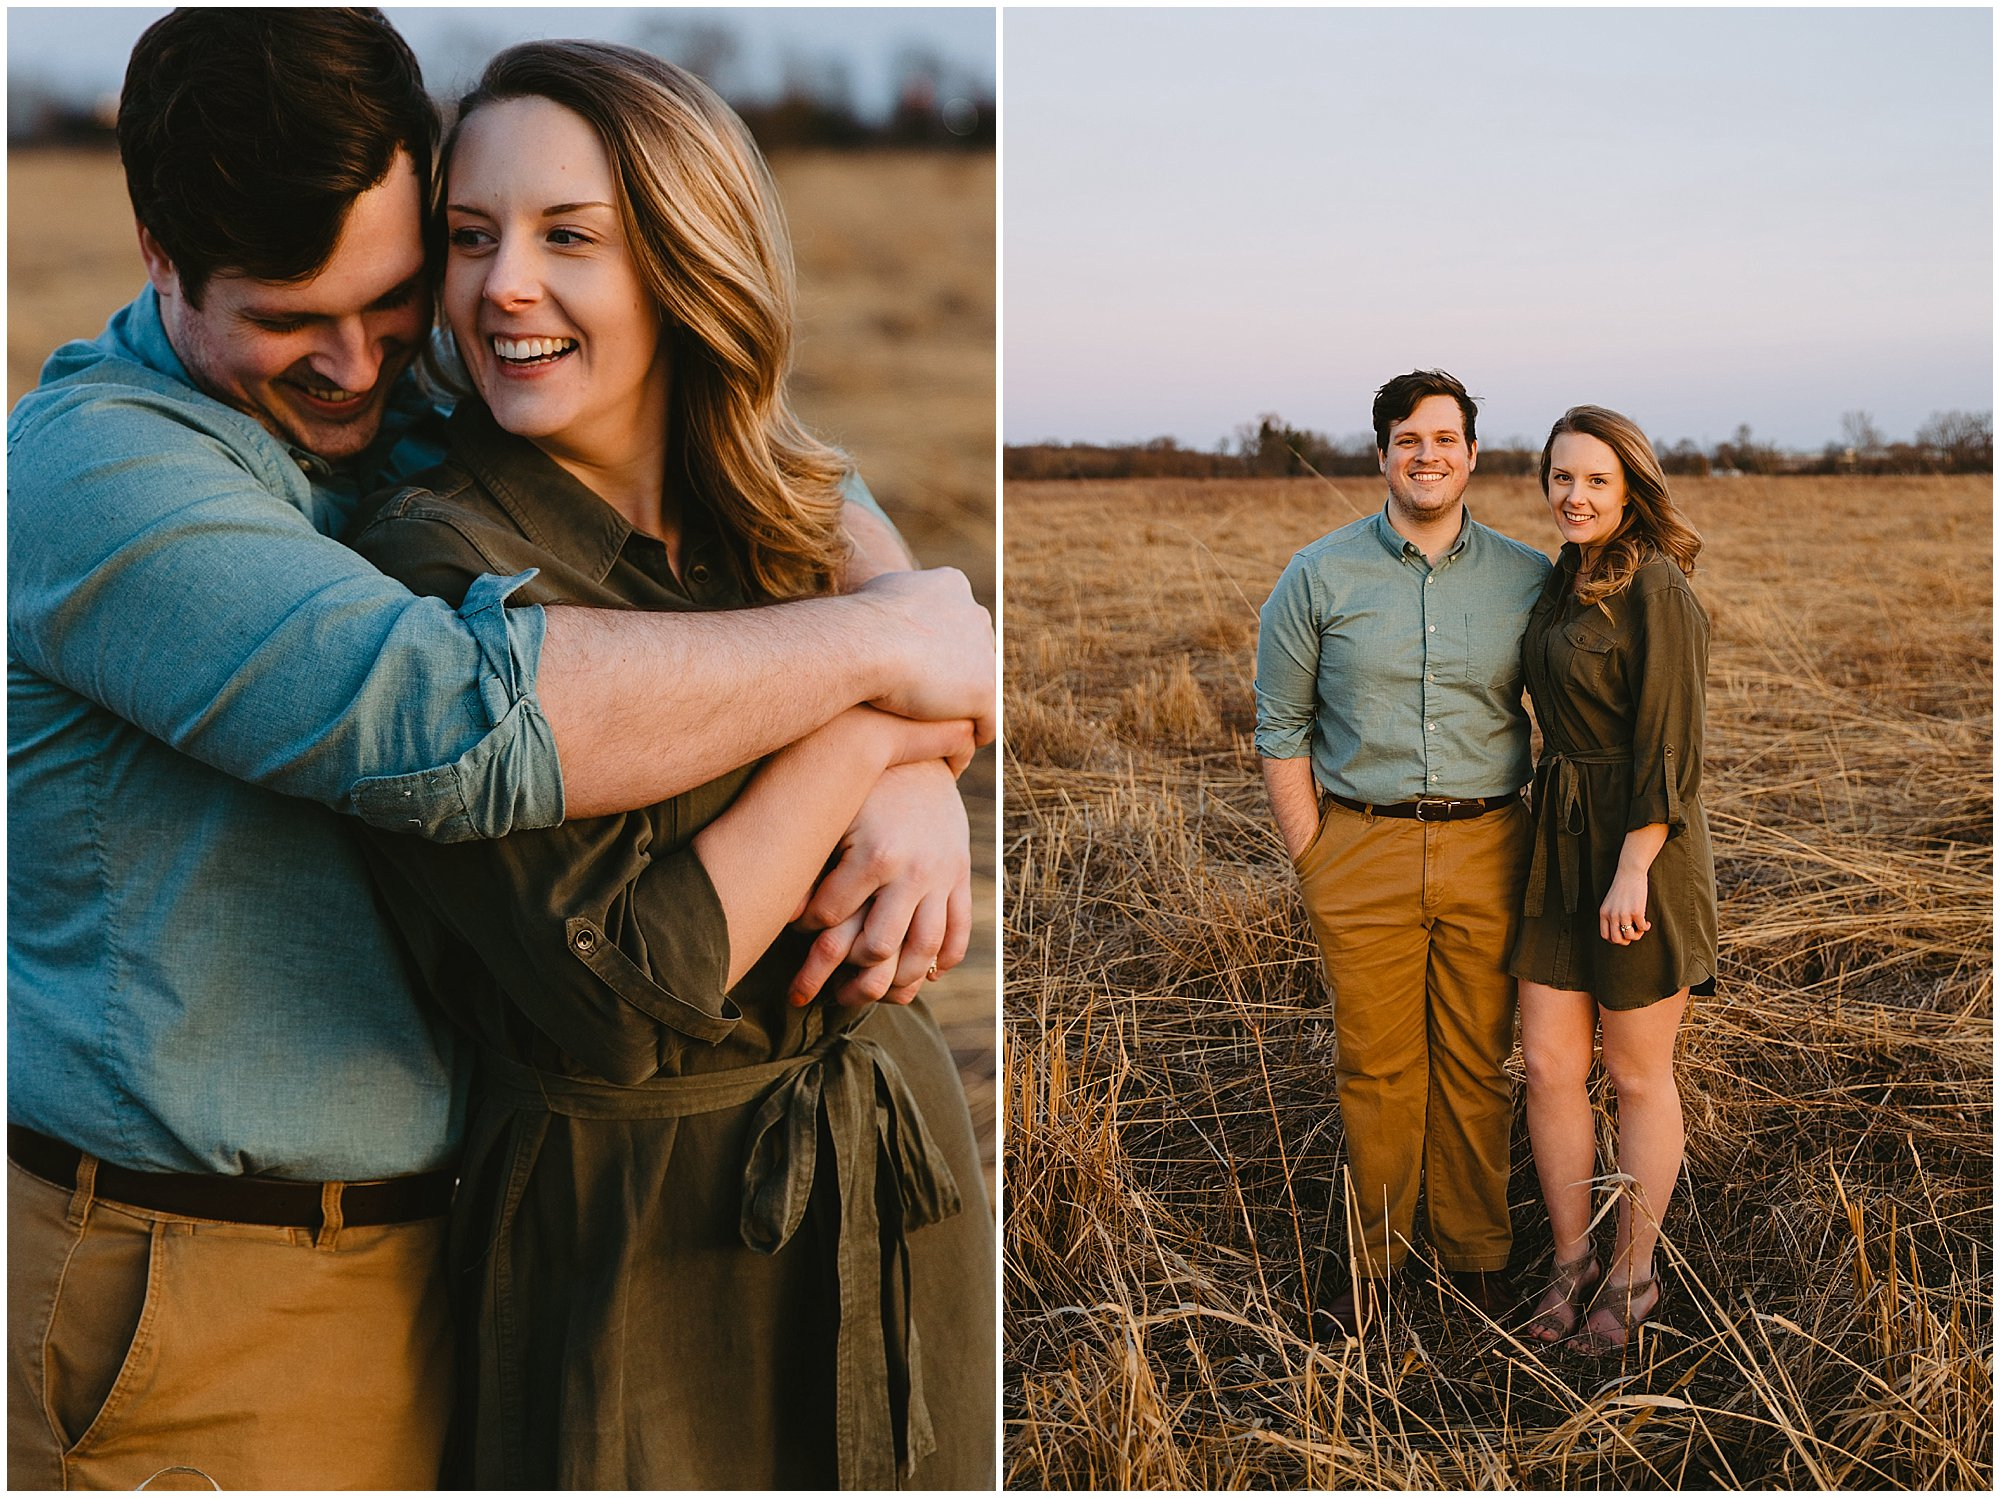 Asylum Lake Kalamazoo Engagement photography